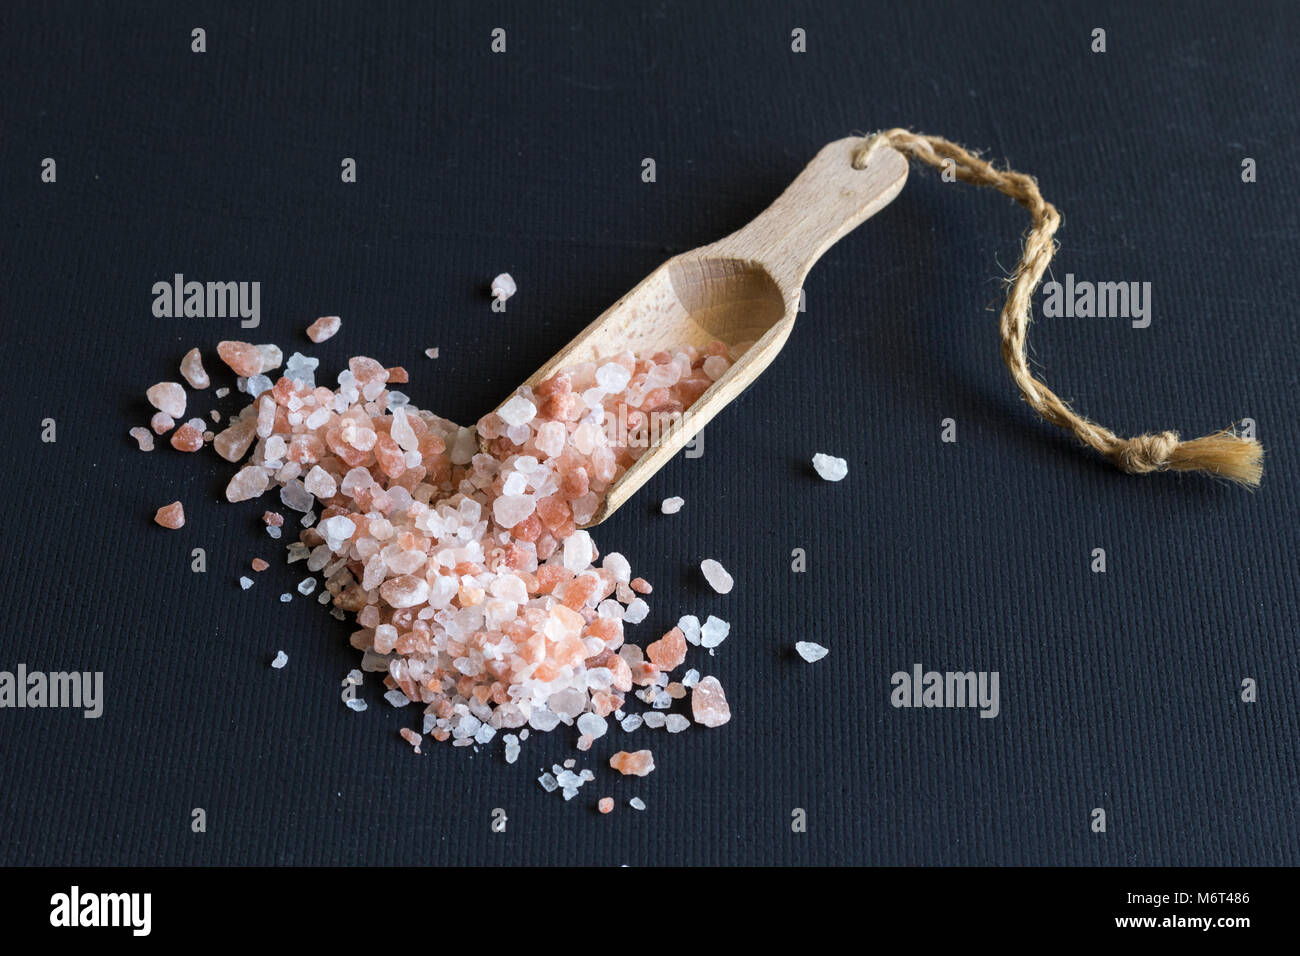 Himalayan rock salt and wooden scoop close up on black rustic background - Stock Image